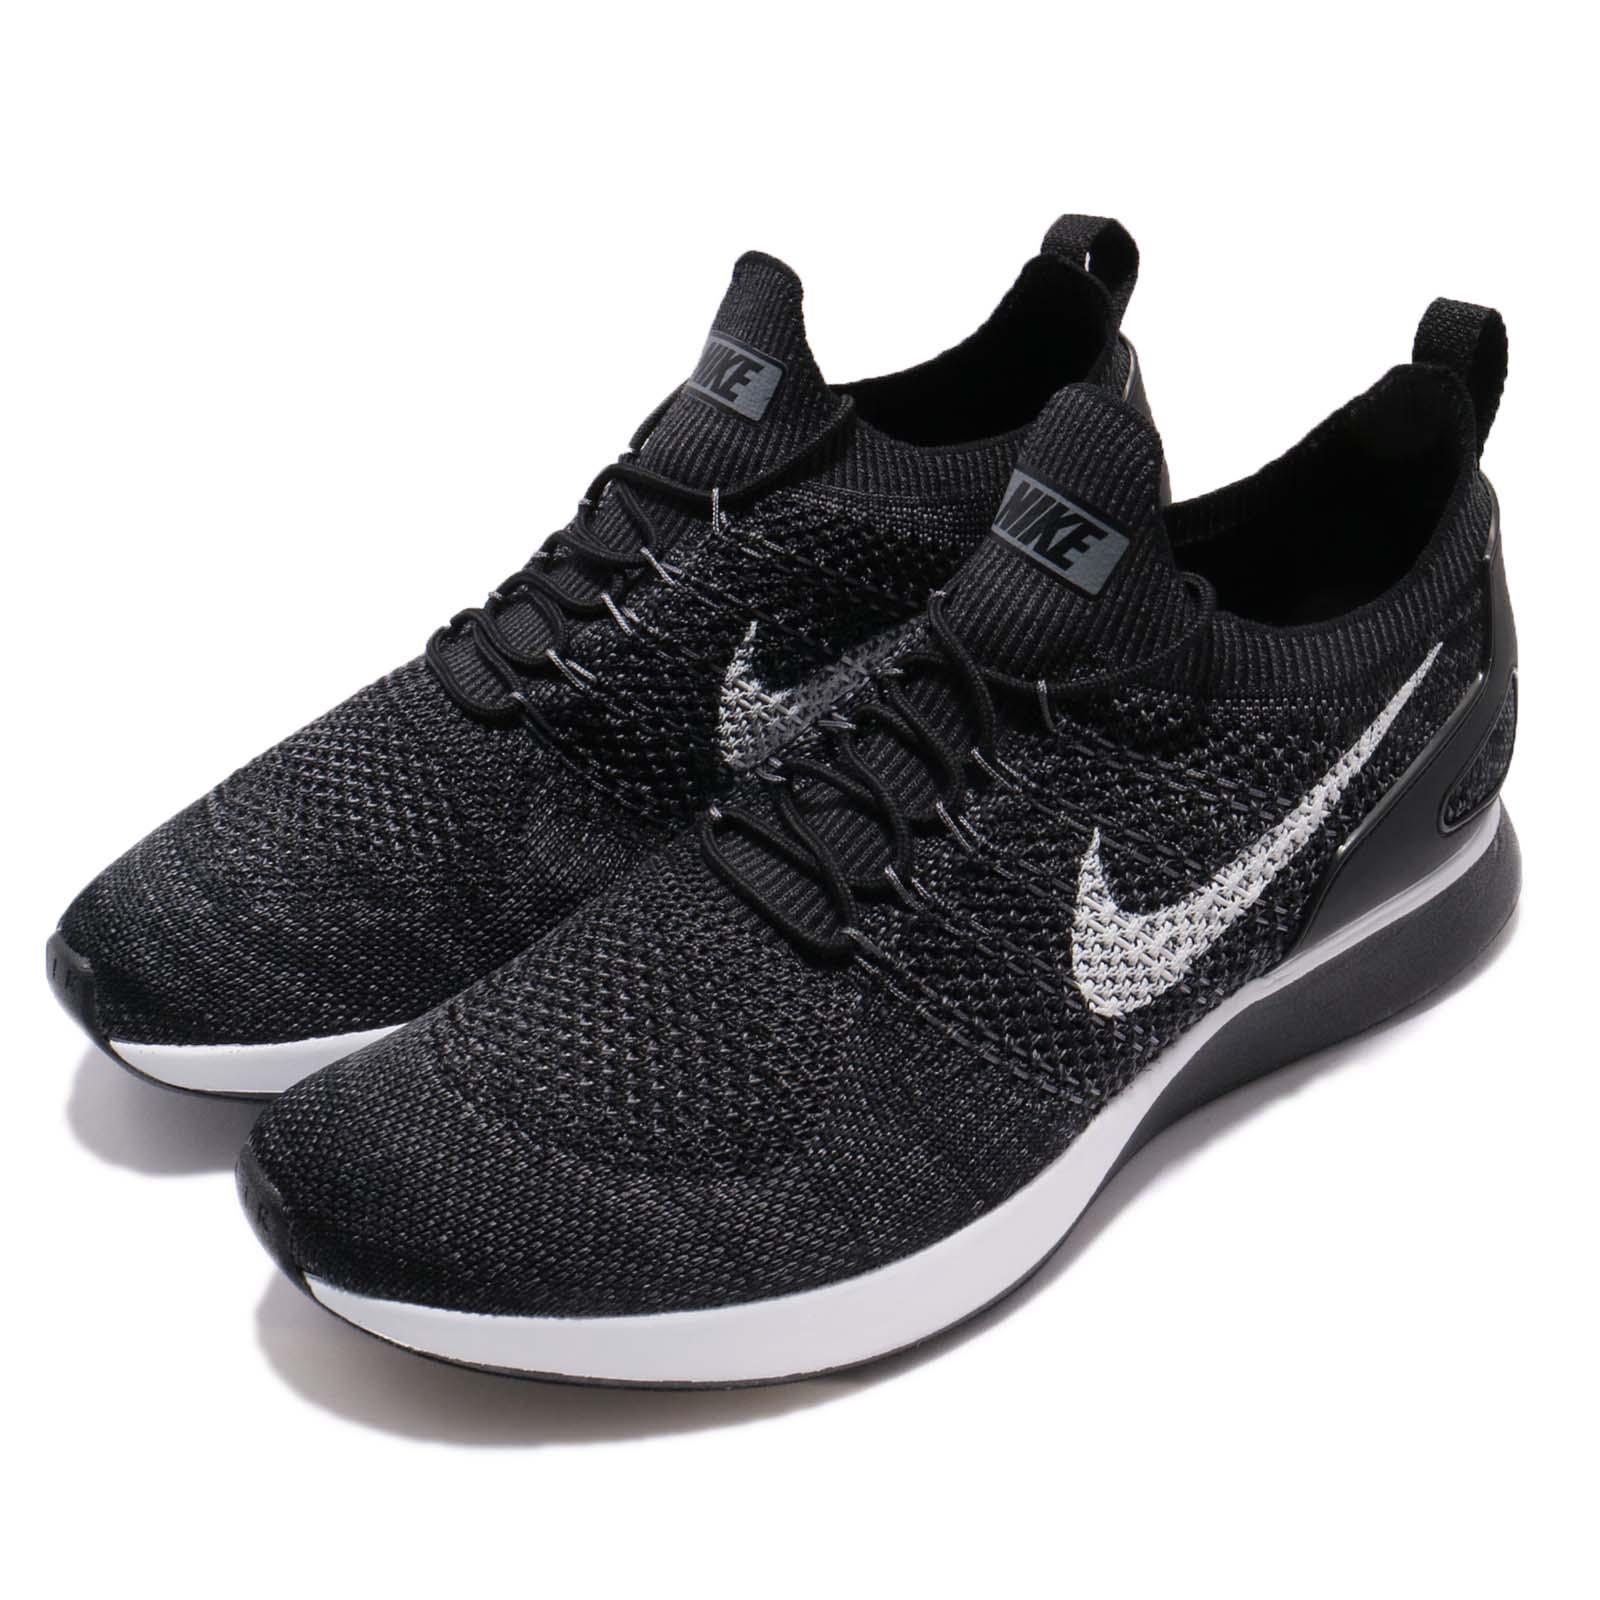 41bfa15e8c936 Details about Nike Air Zoom Mariah Flyknit Racer Black Pure Platinum Men  Running 918264-010